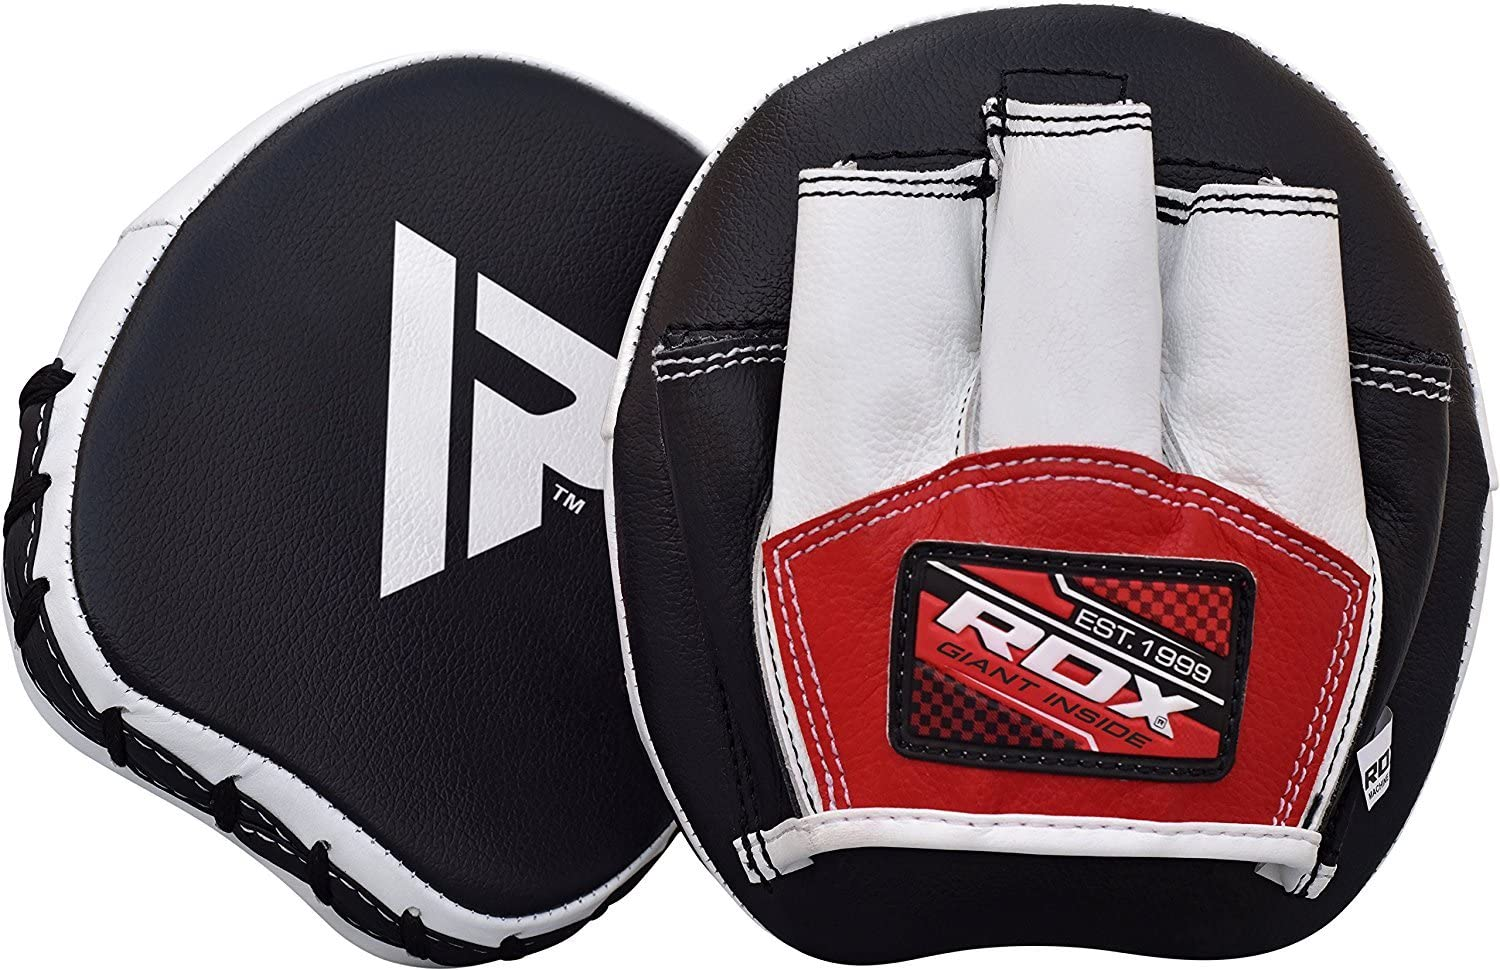 RDX Boxing Pads Mini Focus Mitts, Maya Hide Leather Micro Hook and Jab Hand Pads, Smartie Strike Shield for Kickboxing, MMA, Muay Thai, Punching Target, Martial Arts, Karate Training